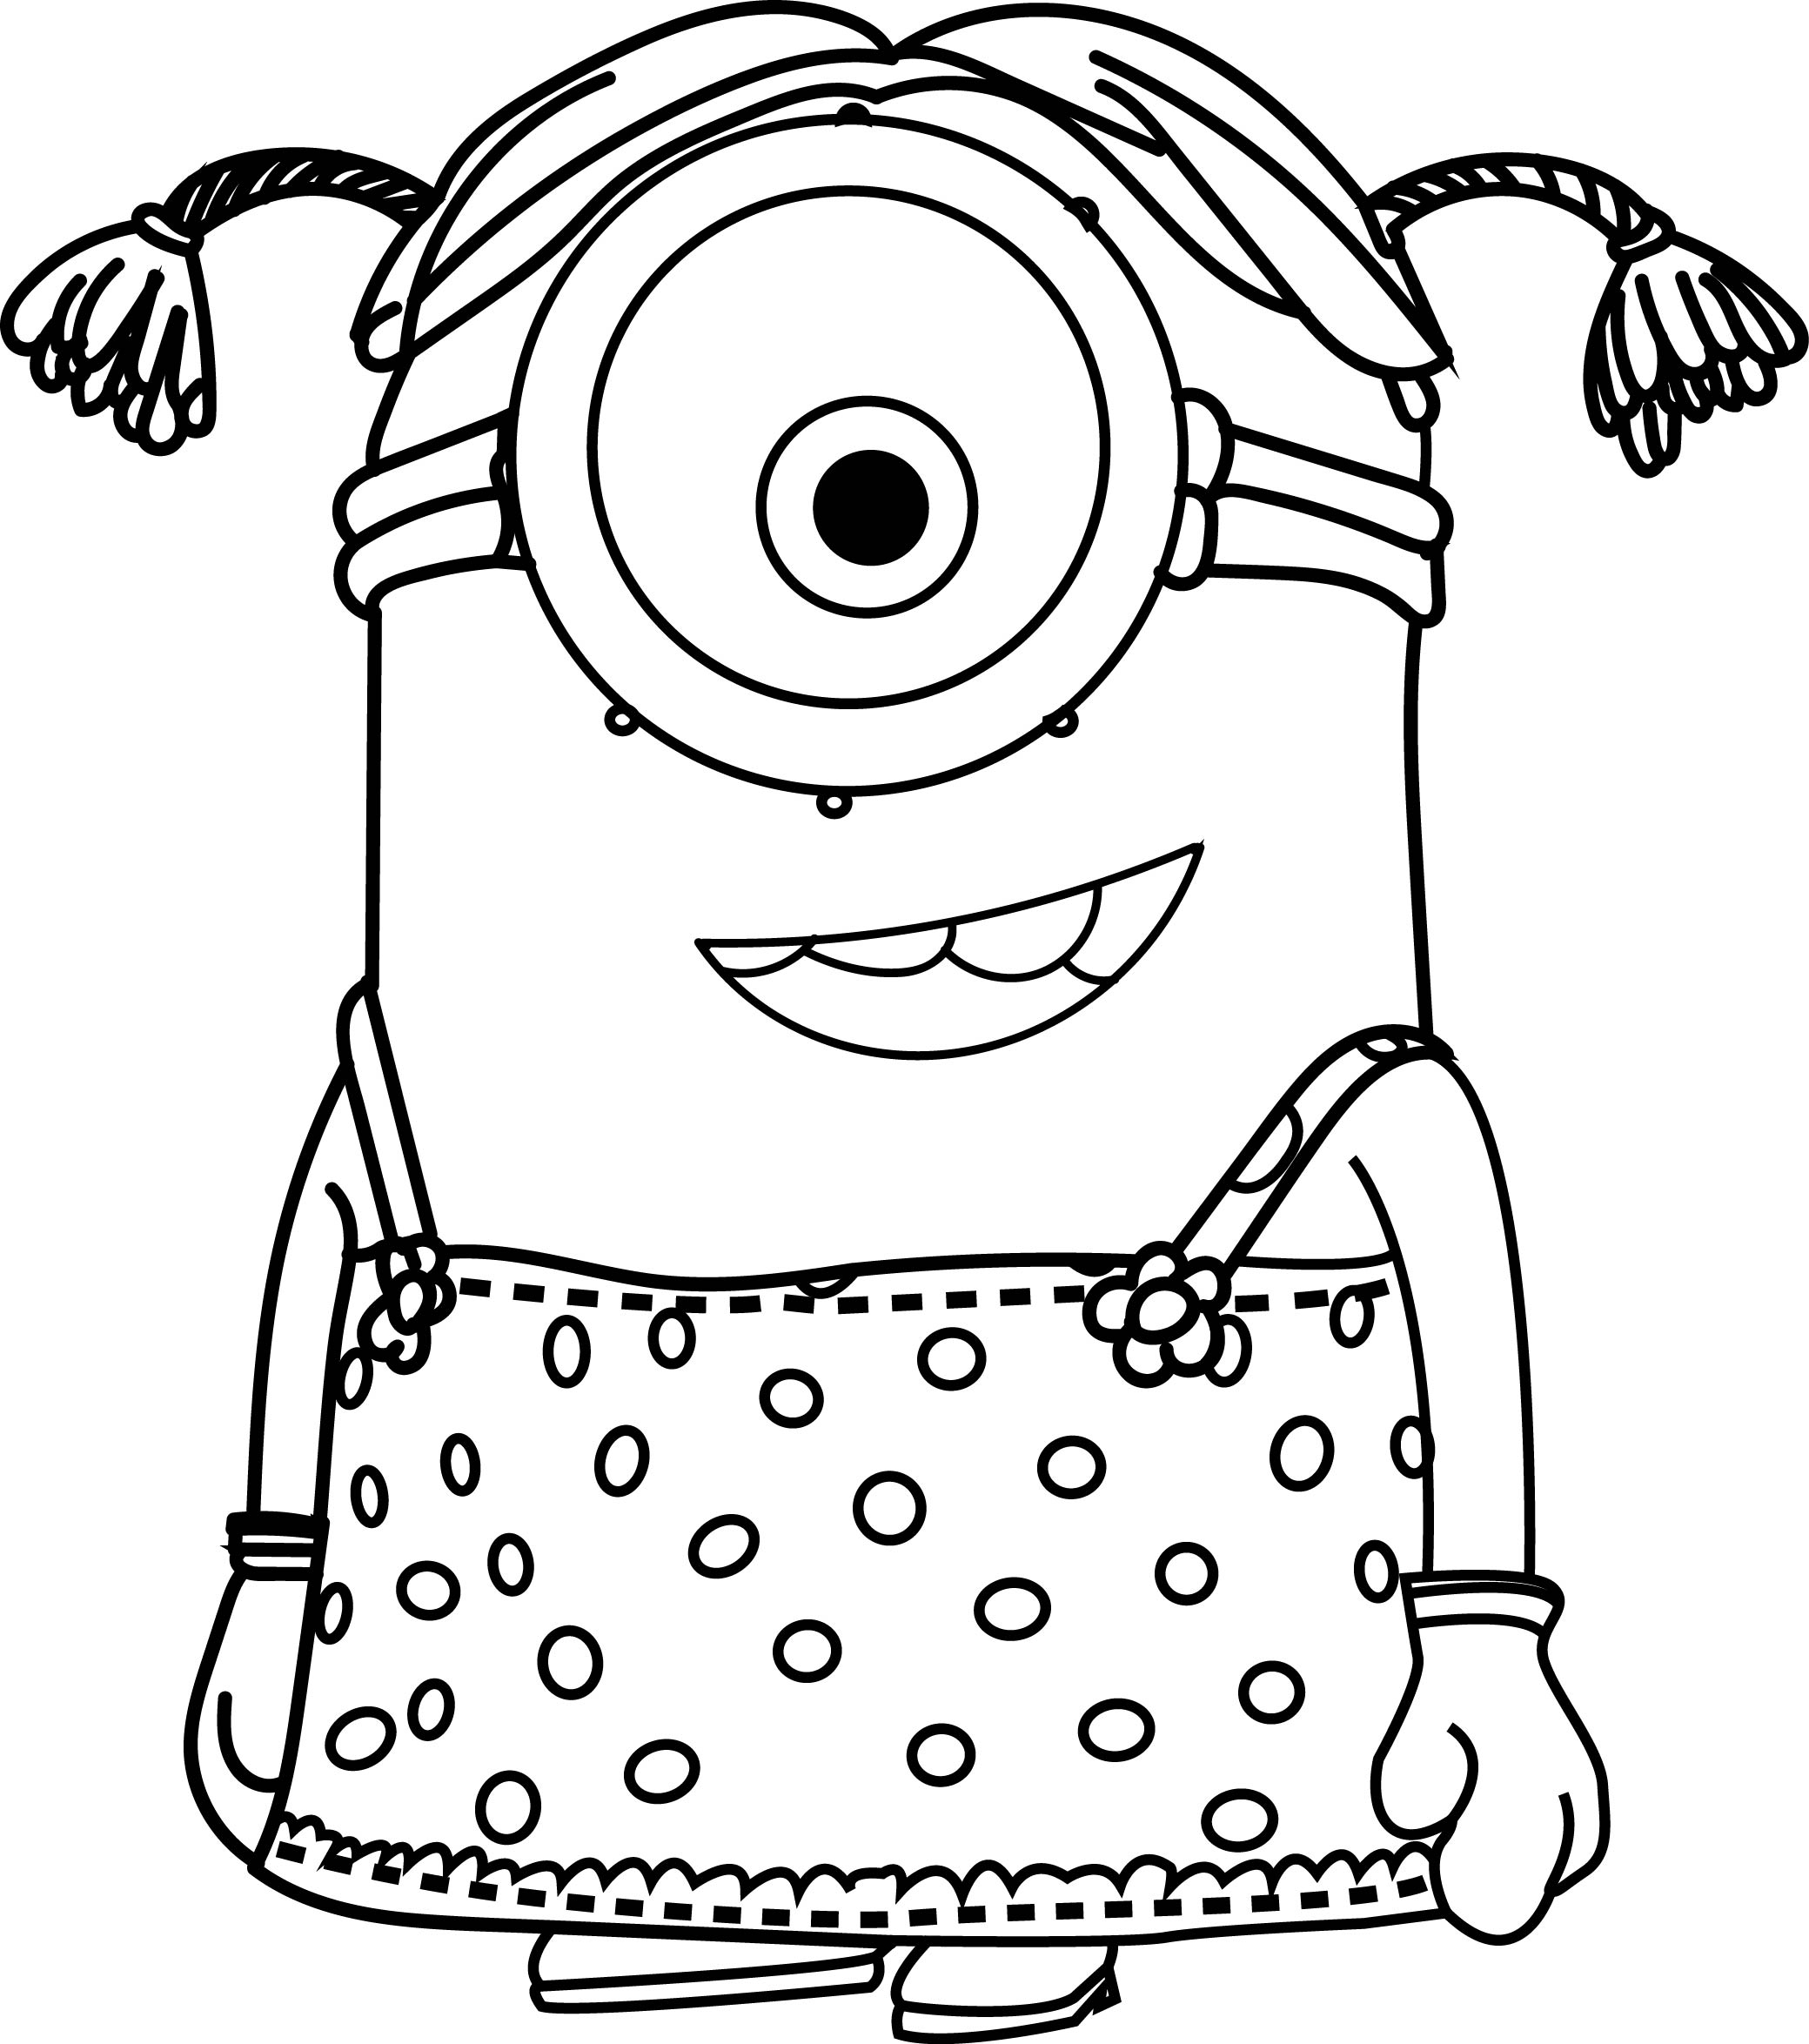 free printable minion pictures easy minion coloring pages at getcoloringscom free pictures printable minion free